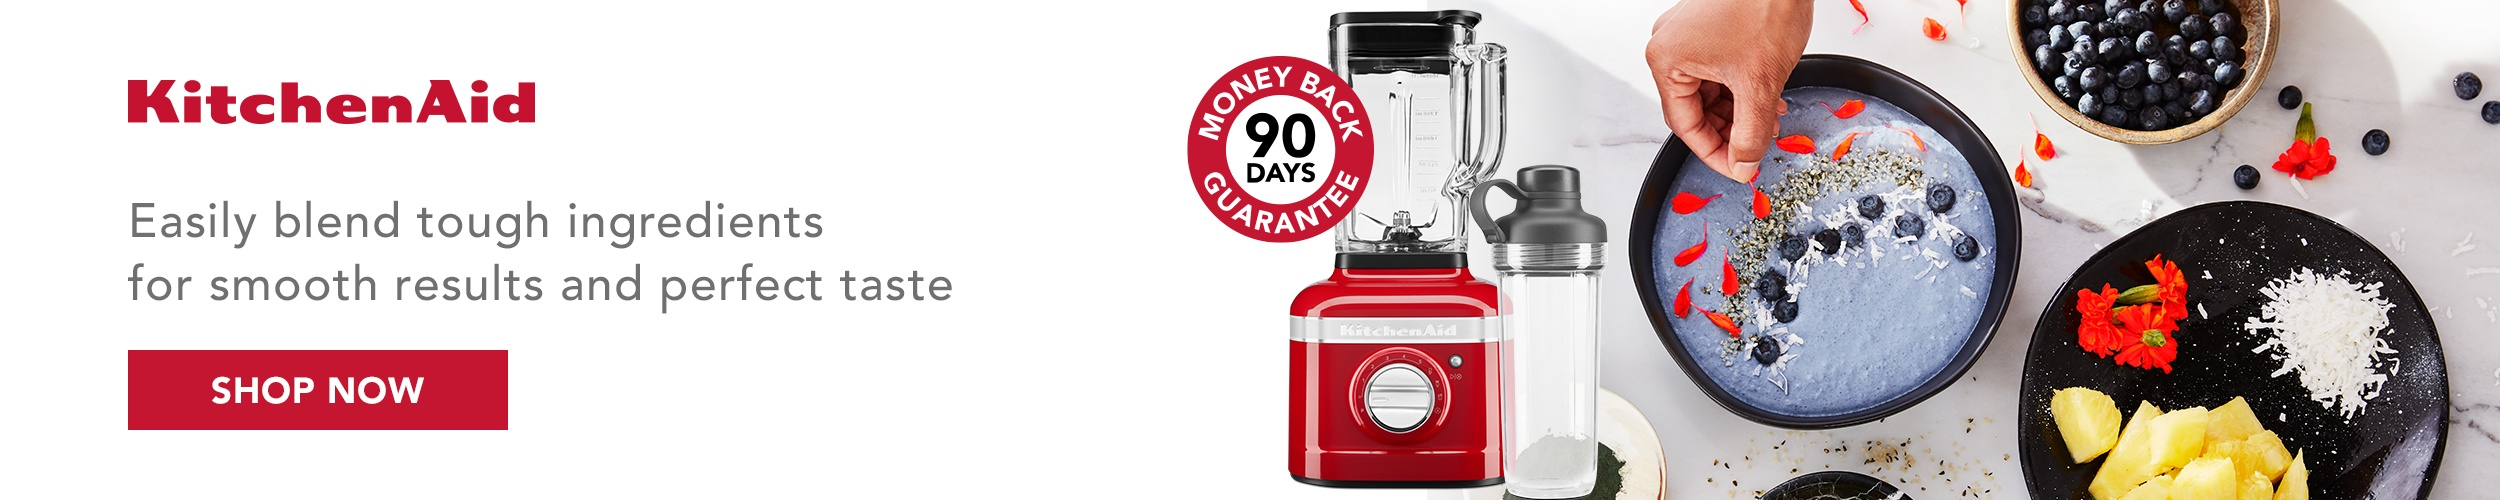 KitchenAid K400 Blender Terms & Conditions